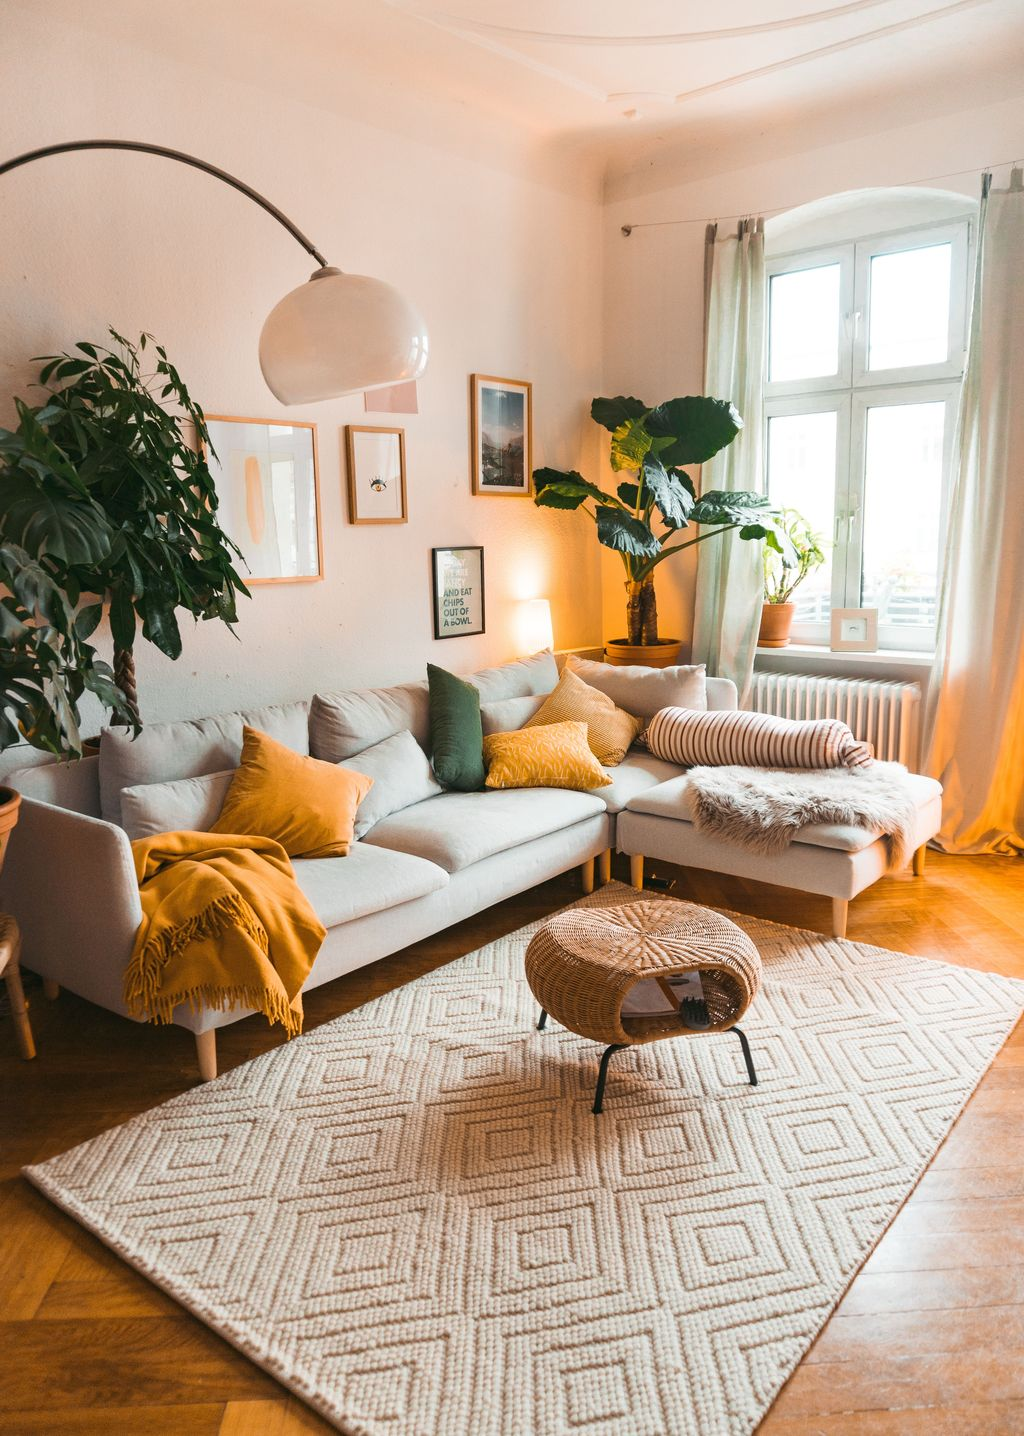 Charming Yellow Interior Design Ideas Best For Summer 33